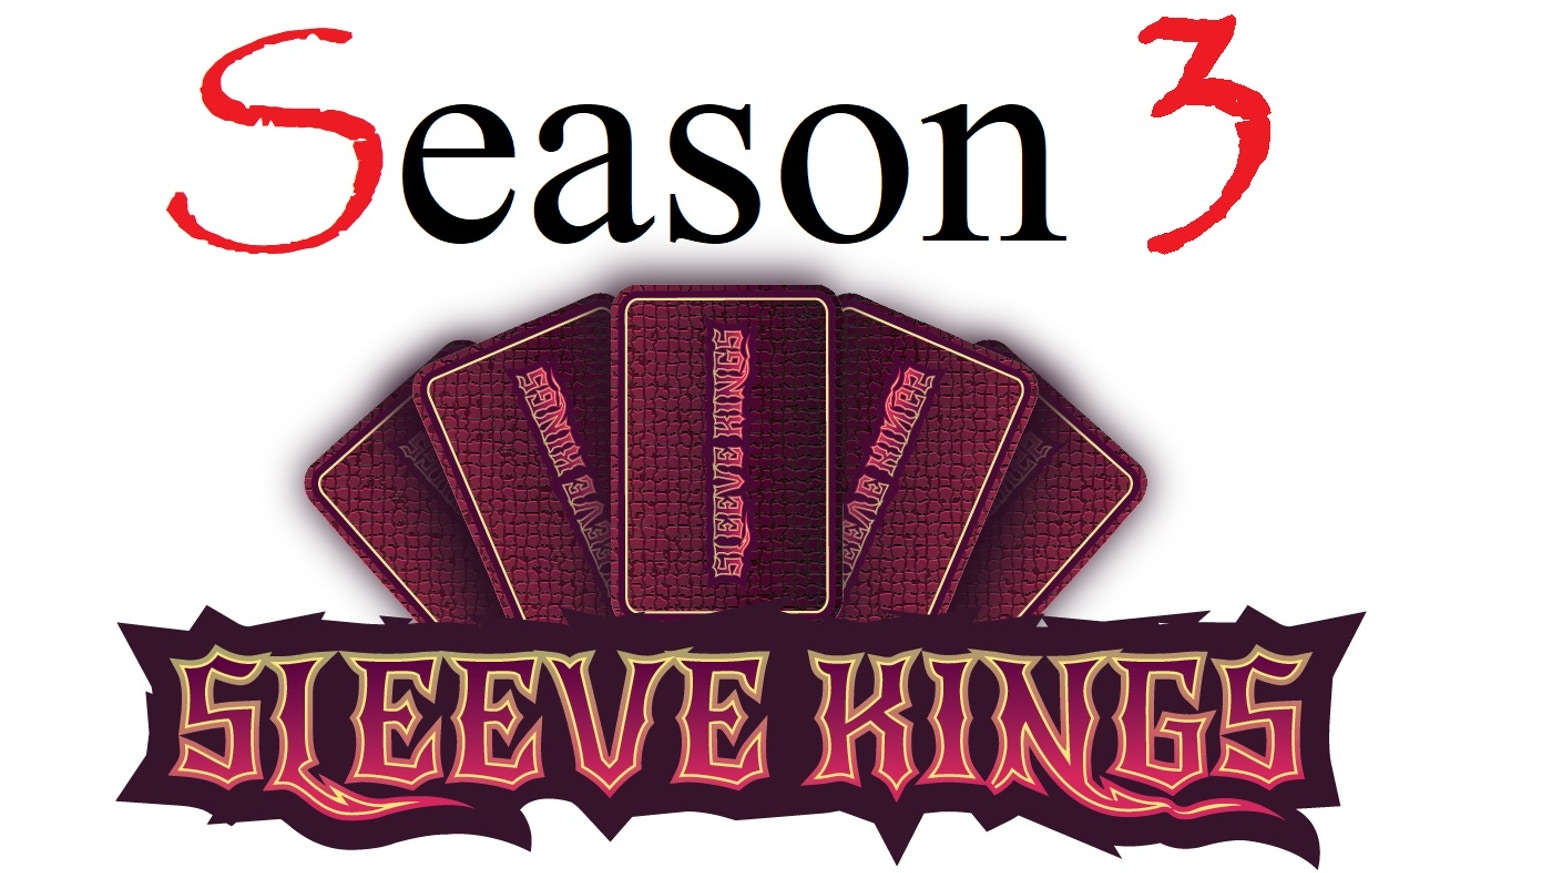 Season 3 of Sleeve Kings unique 60-micron, 110-pack card sleeves featuring our all-new packaging, amazing pricing & our new METAL COINS